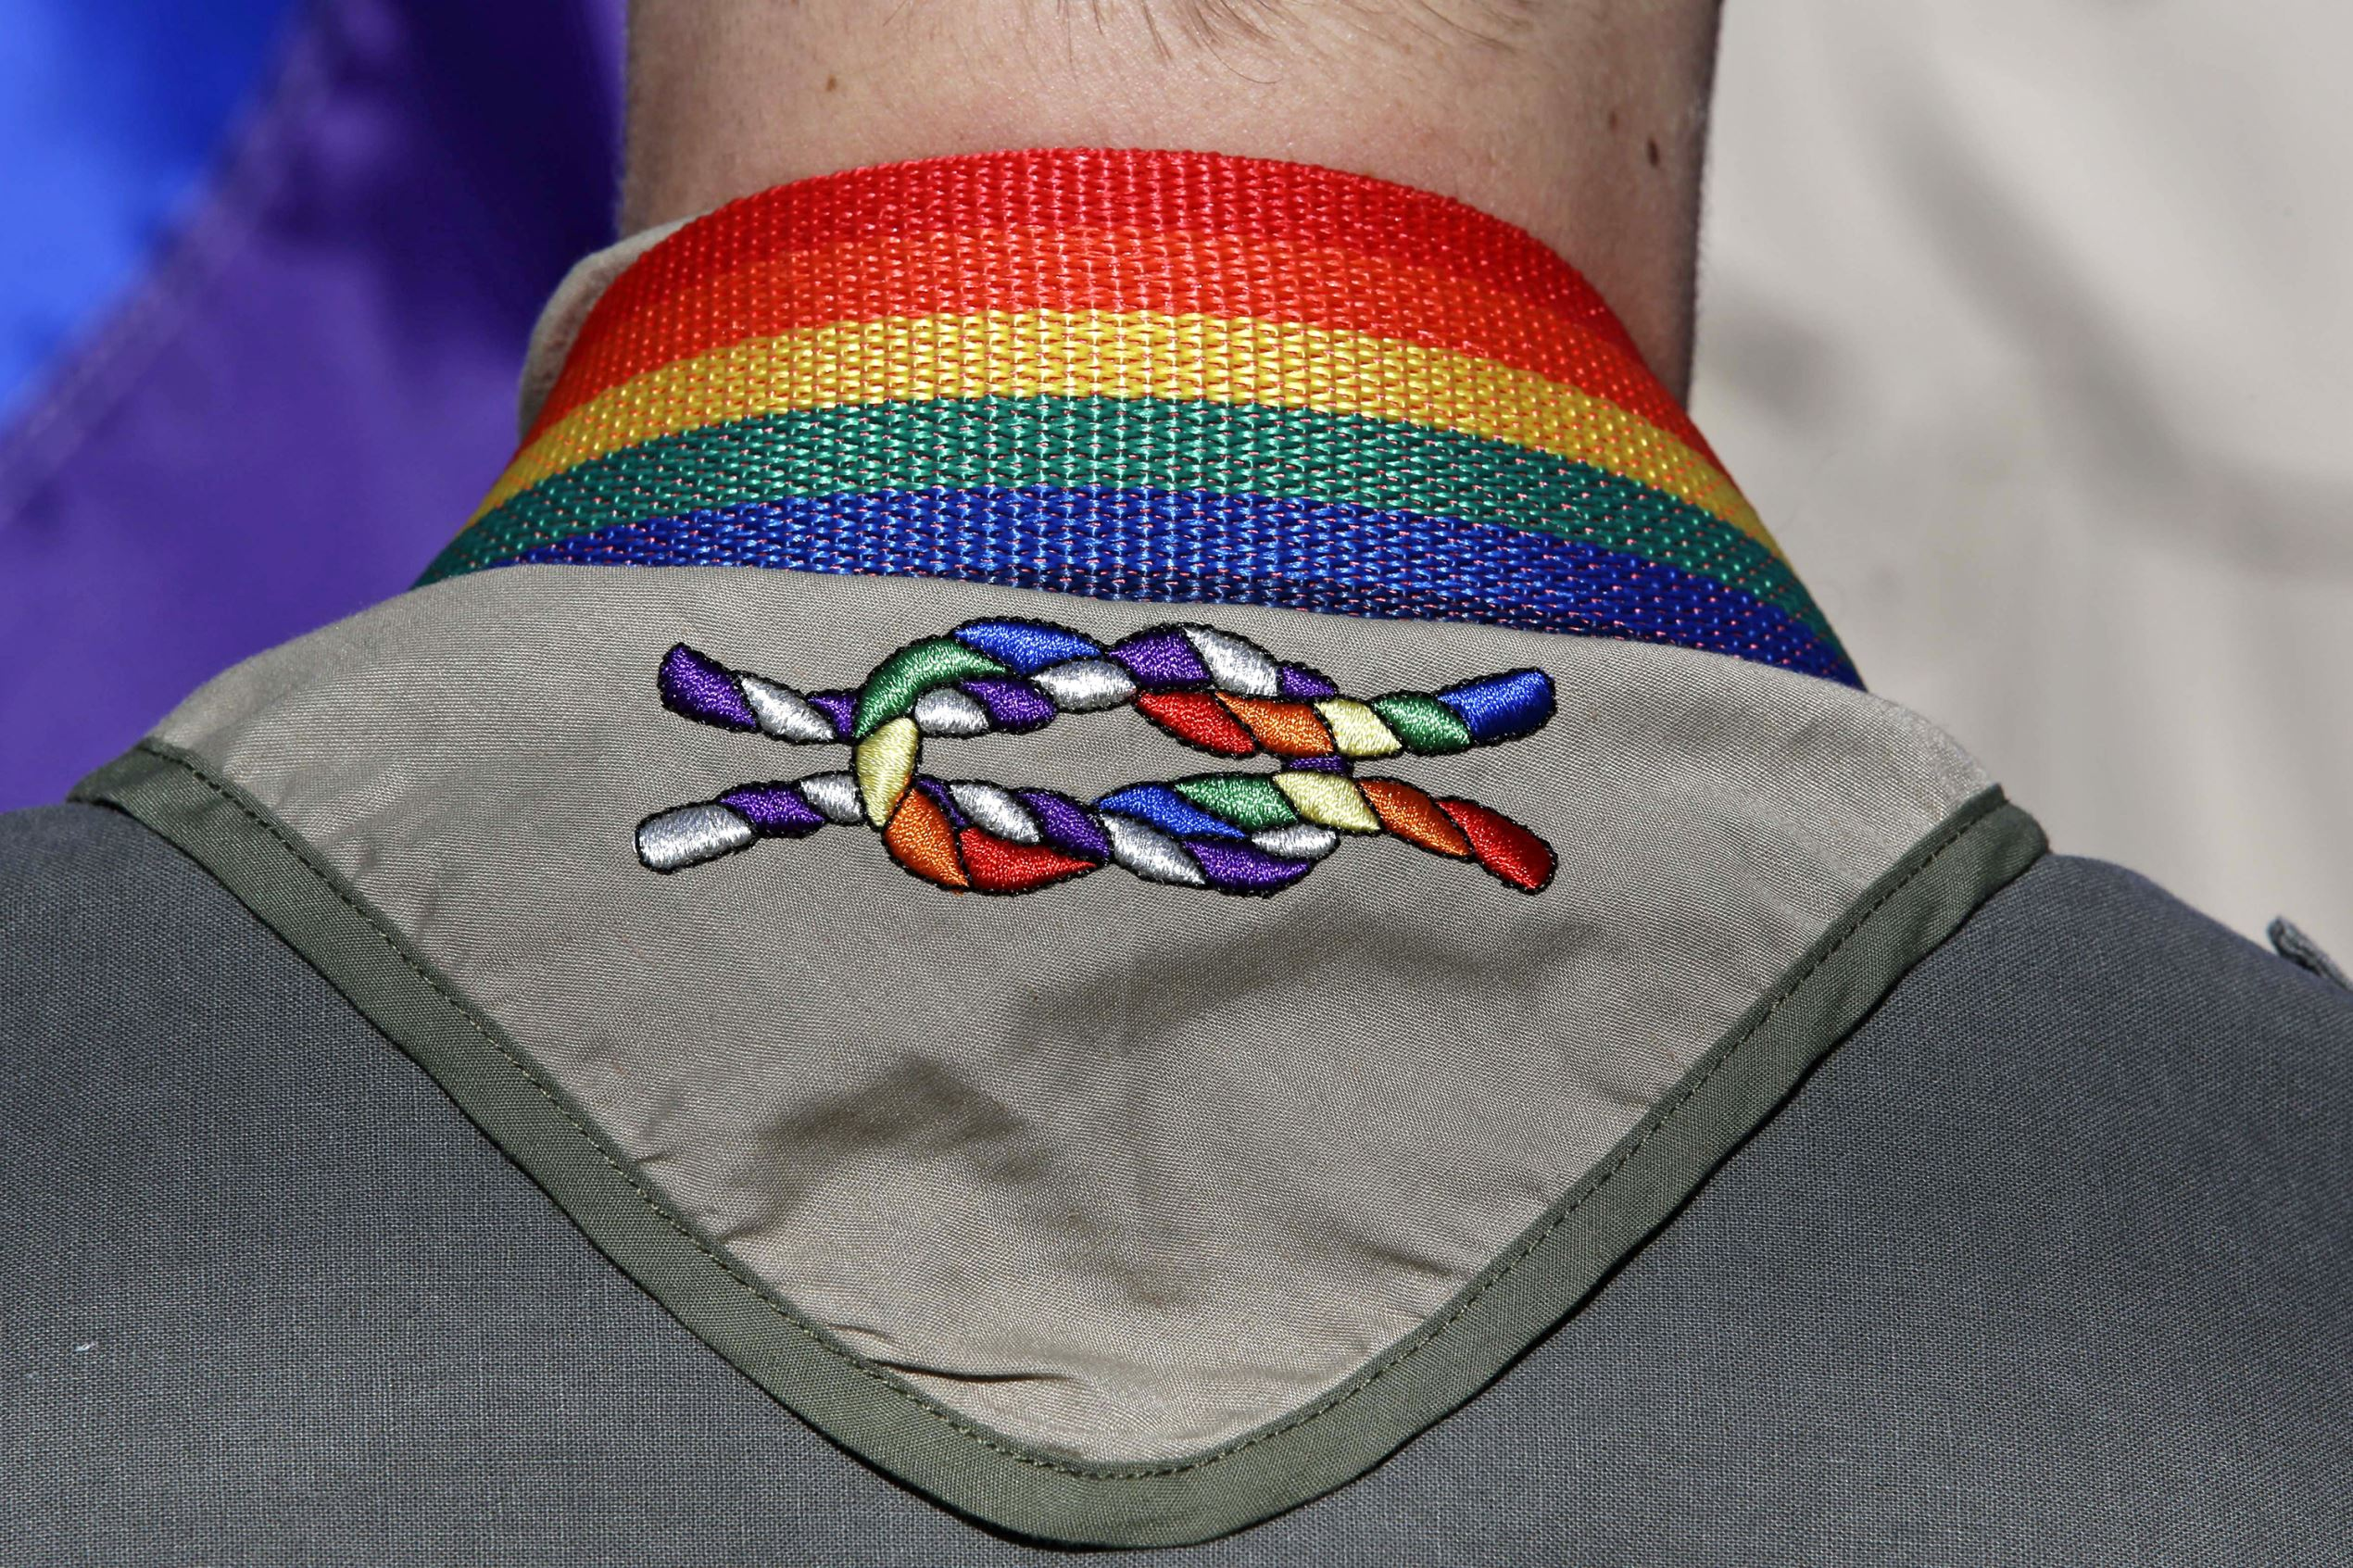 A Boy Scout wears his kerchief embroidered with a rainbow knot during Salt Lake City's annual gay pride parade. The Mormon Church, the nation's largest sponsor of Boy Scout units, is keeping its longtime affiliation with the organization despite its decision to allow gay troop leaders. Church leaders decided to stay with the Boy Scouts after getting assurances they can appoint troop leaders according to their own religious and moral values, The Church of Jesus Christ of Latter-day Saints said in a news release Wednesday, Aug. 26, 2015.